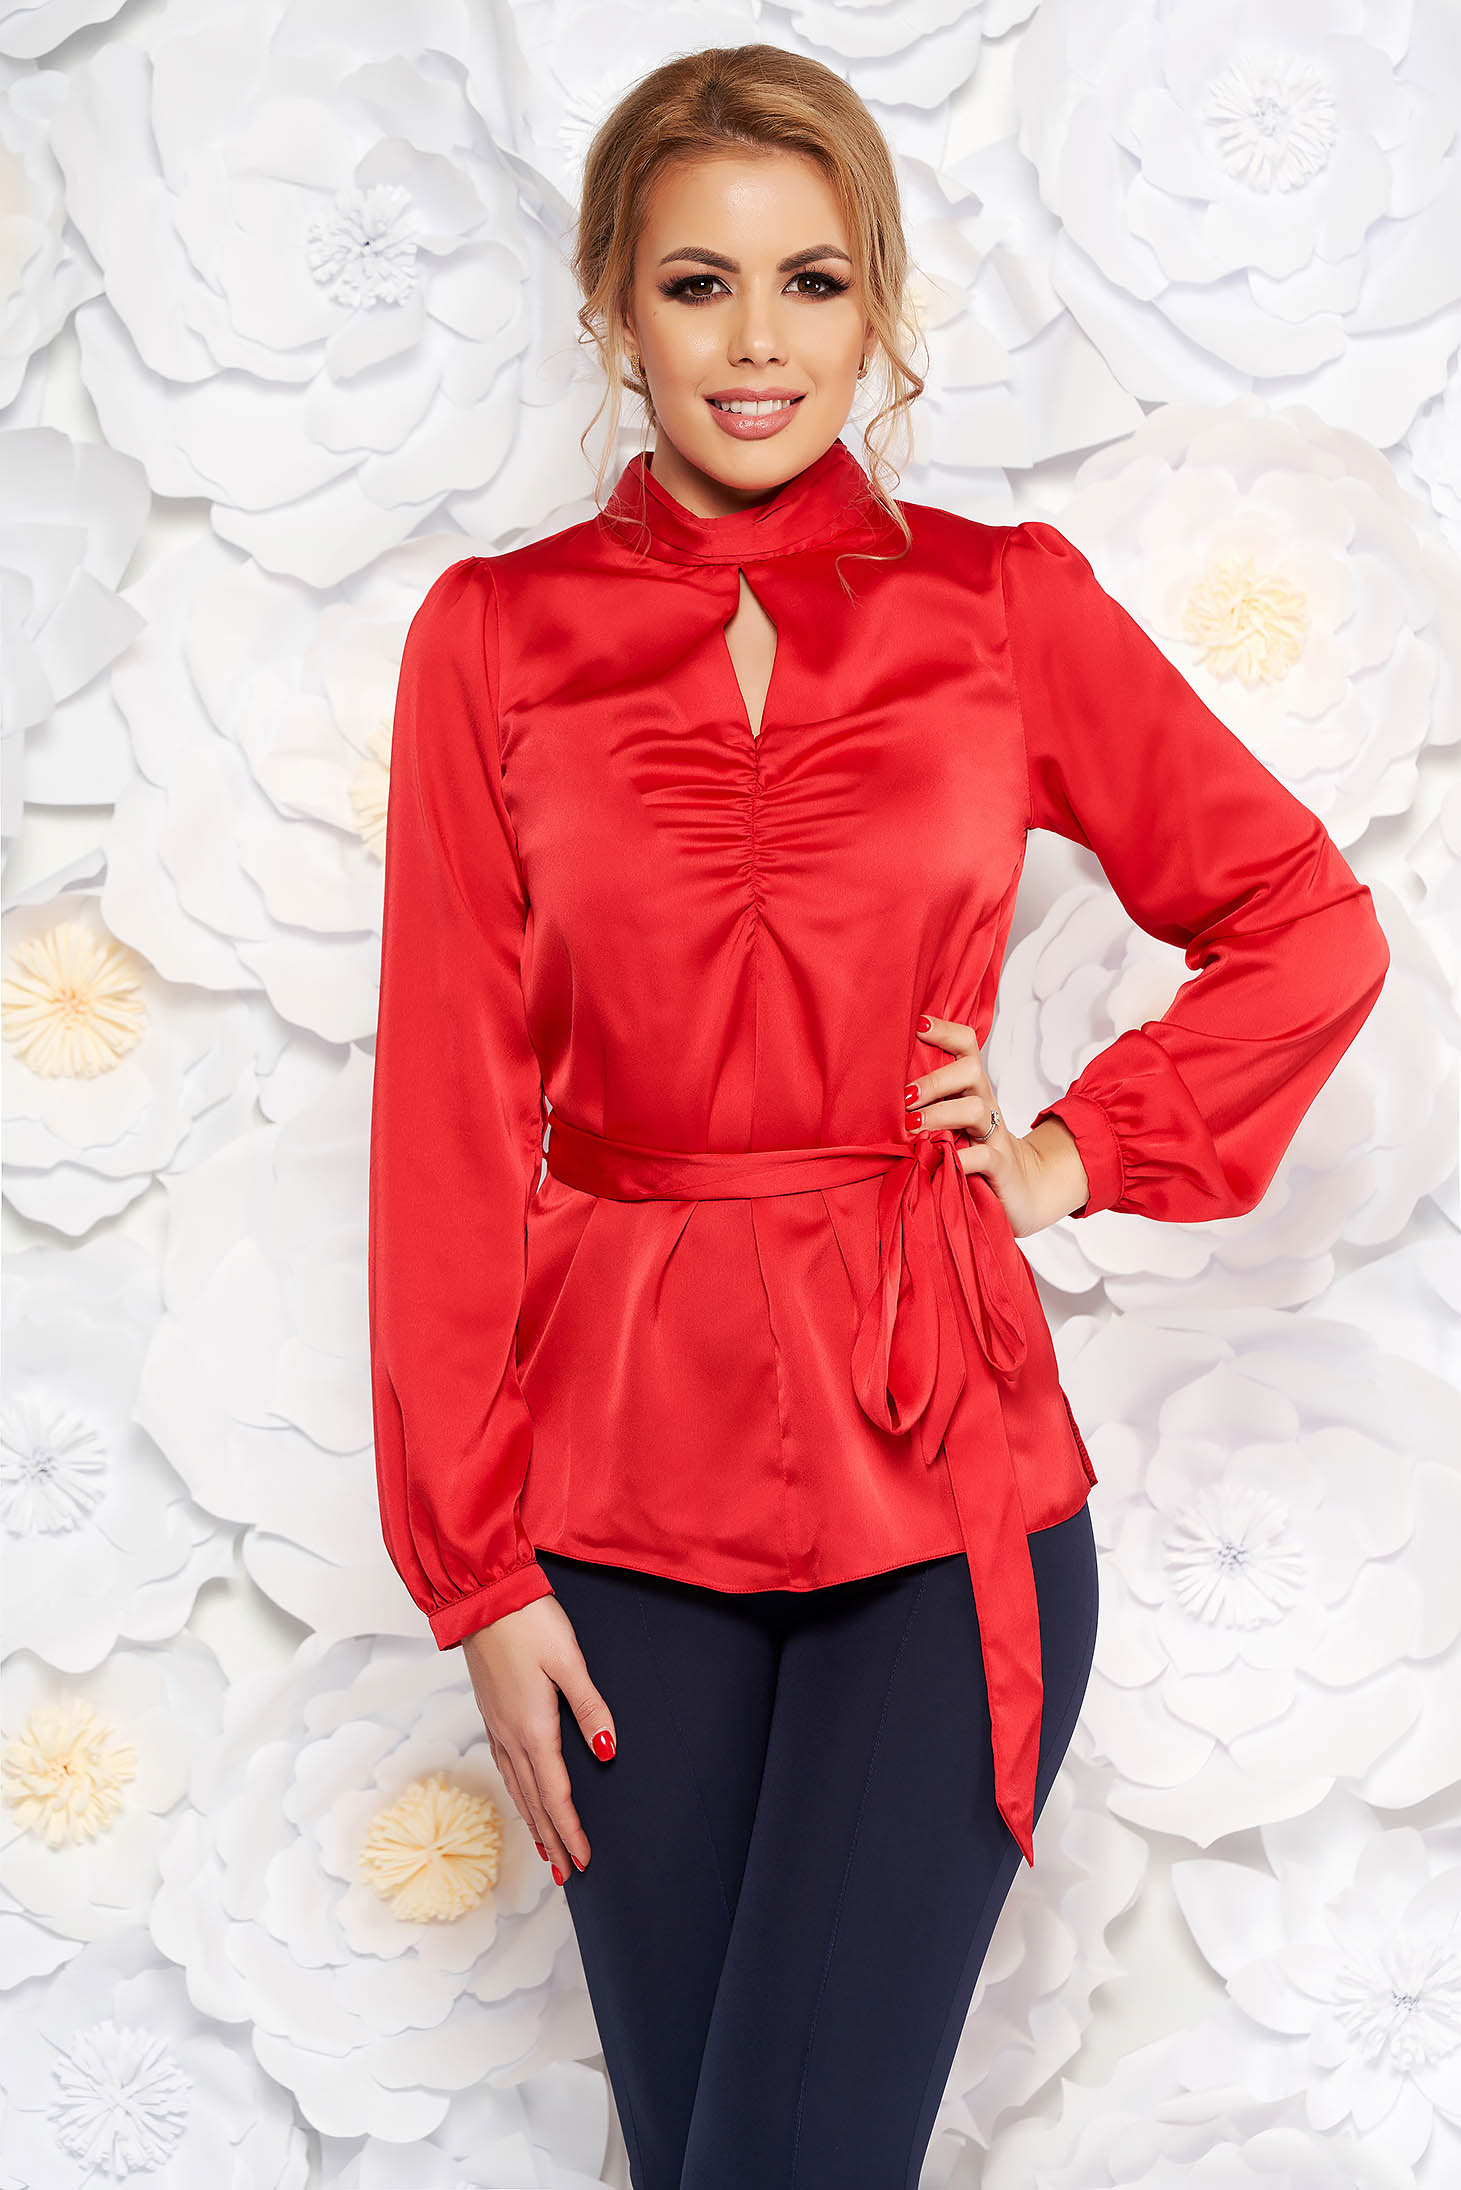 Red women`s blouse with easy cut from satin fabric texture accessorized with tied waistband